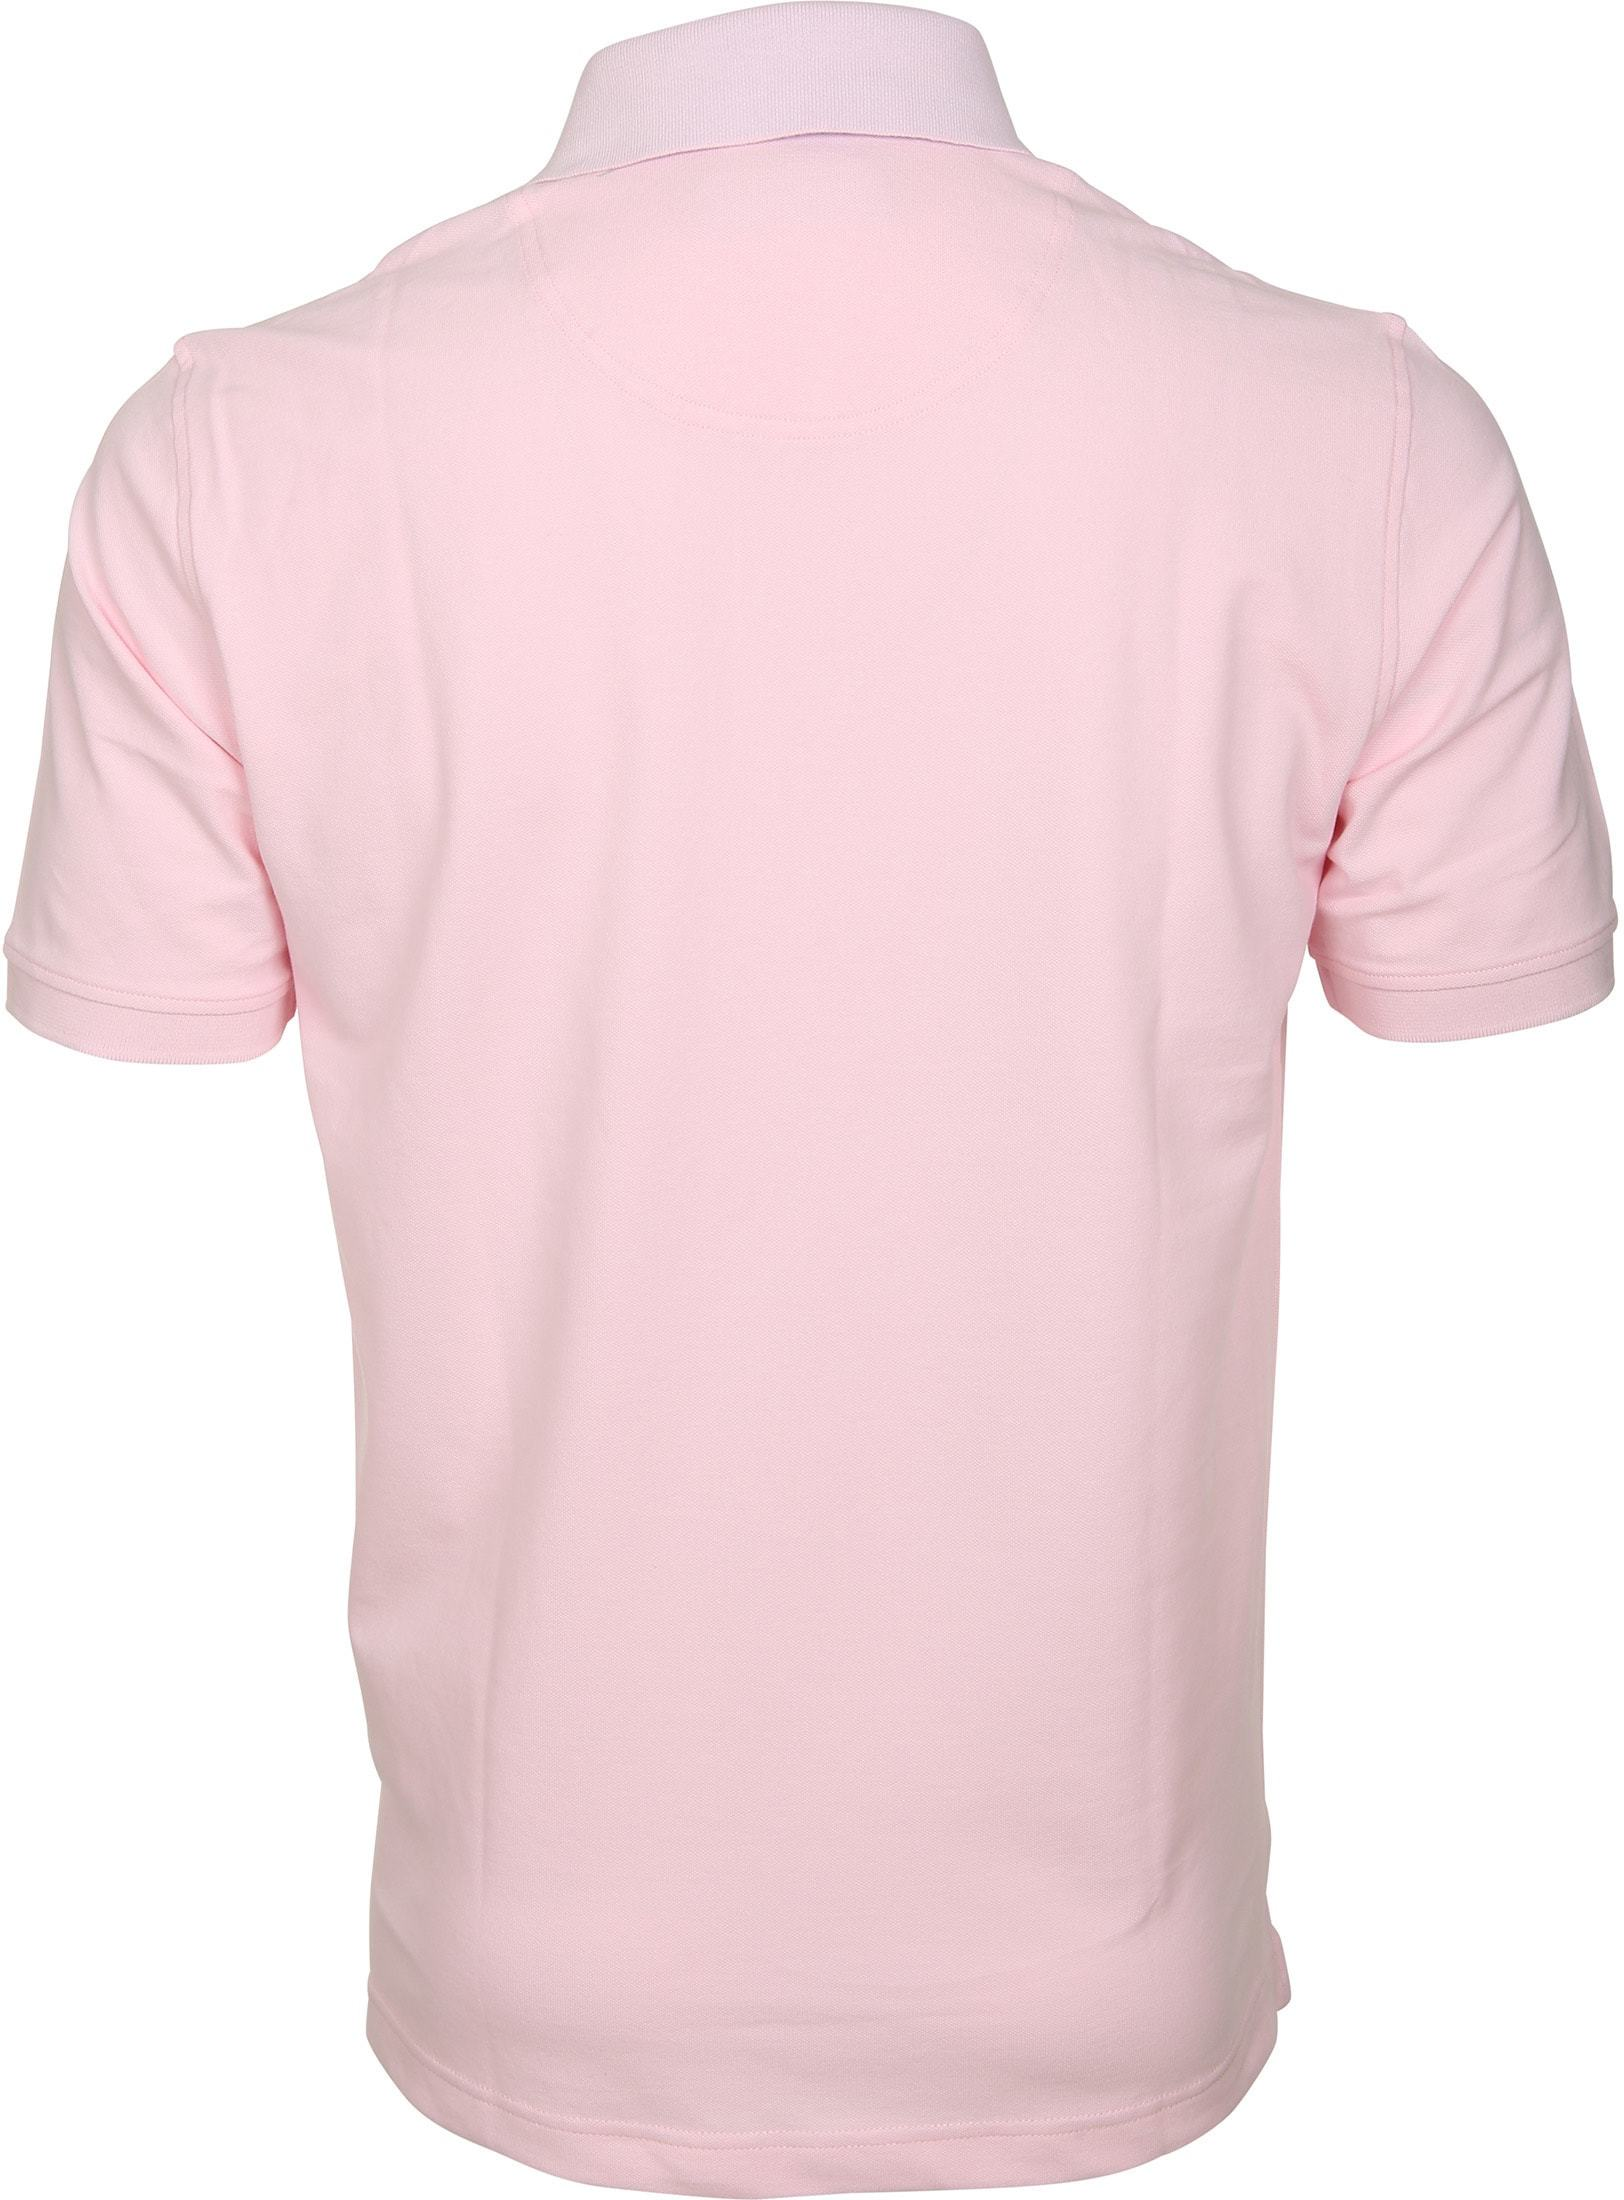 Suitable Polo Basic Roze foto 4